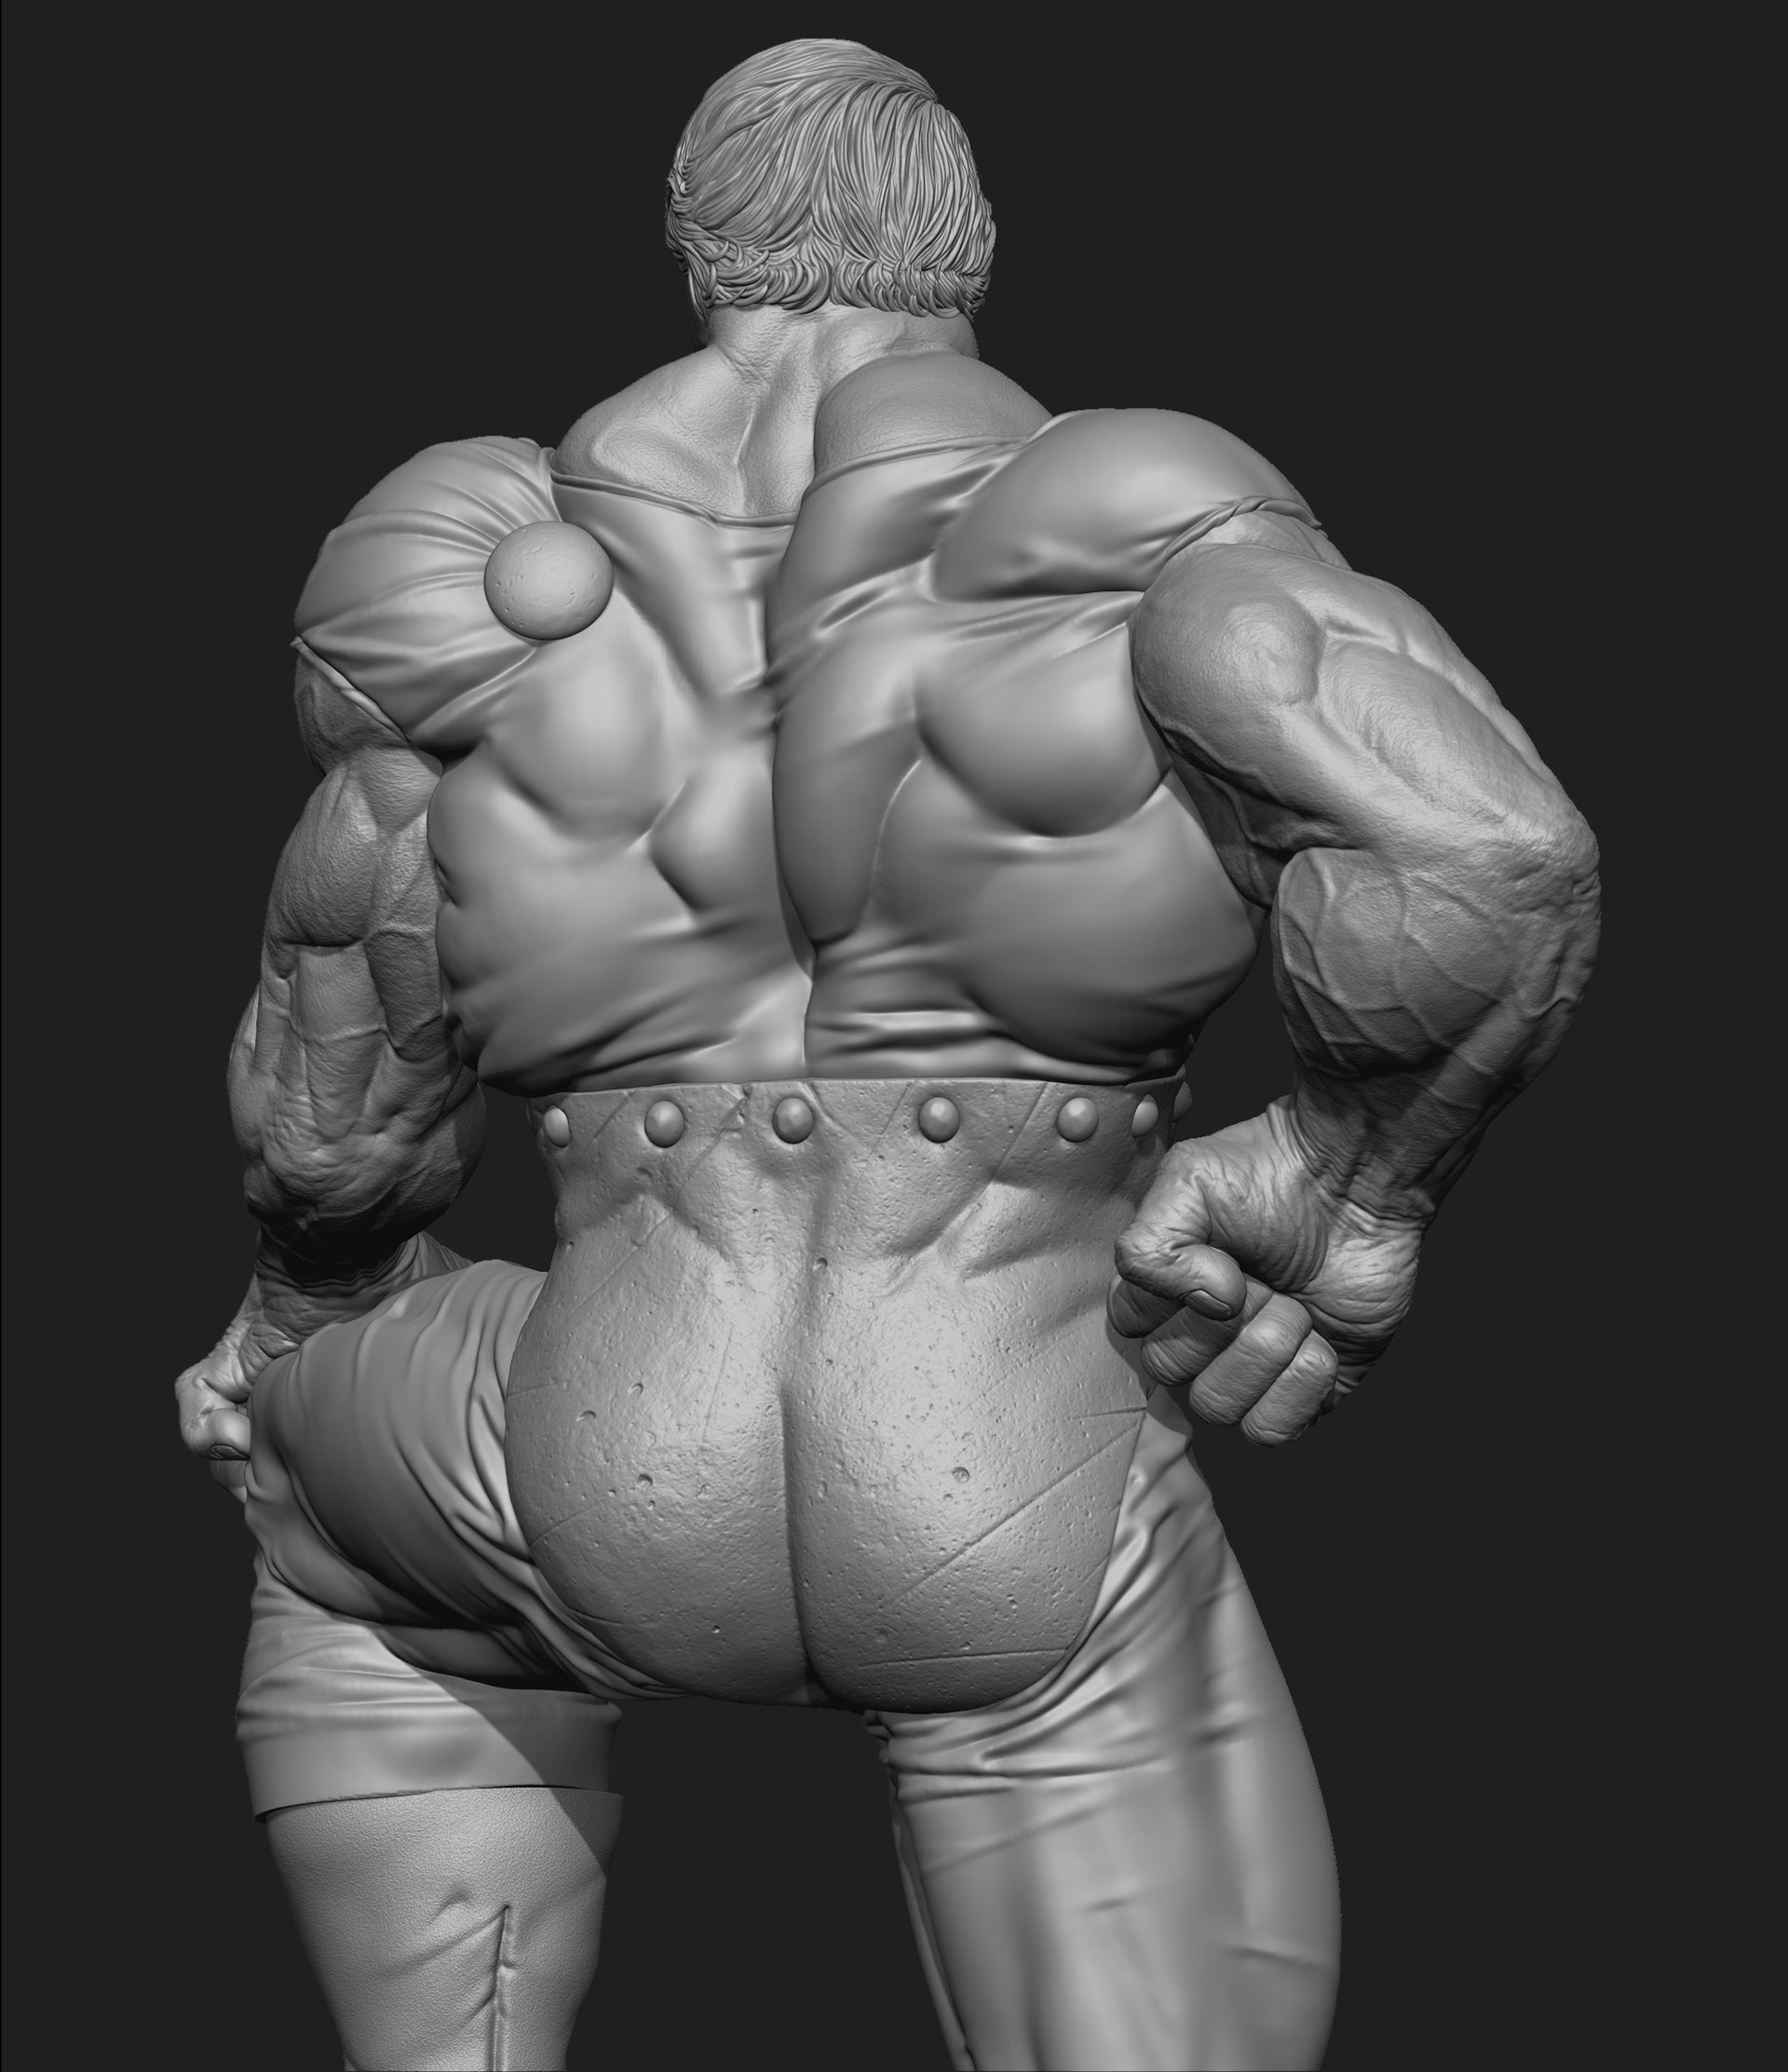 HyperionZbrushGray_14